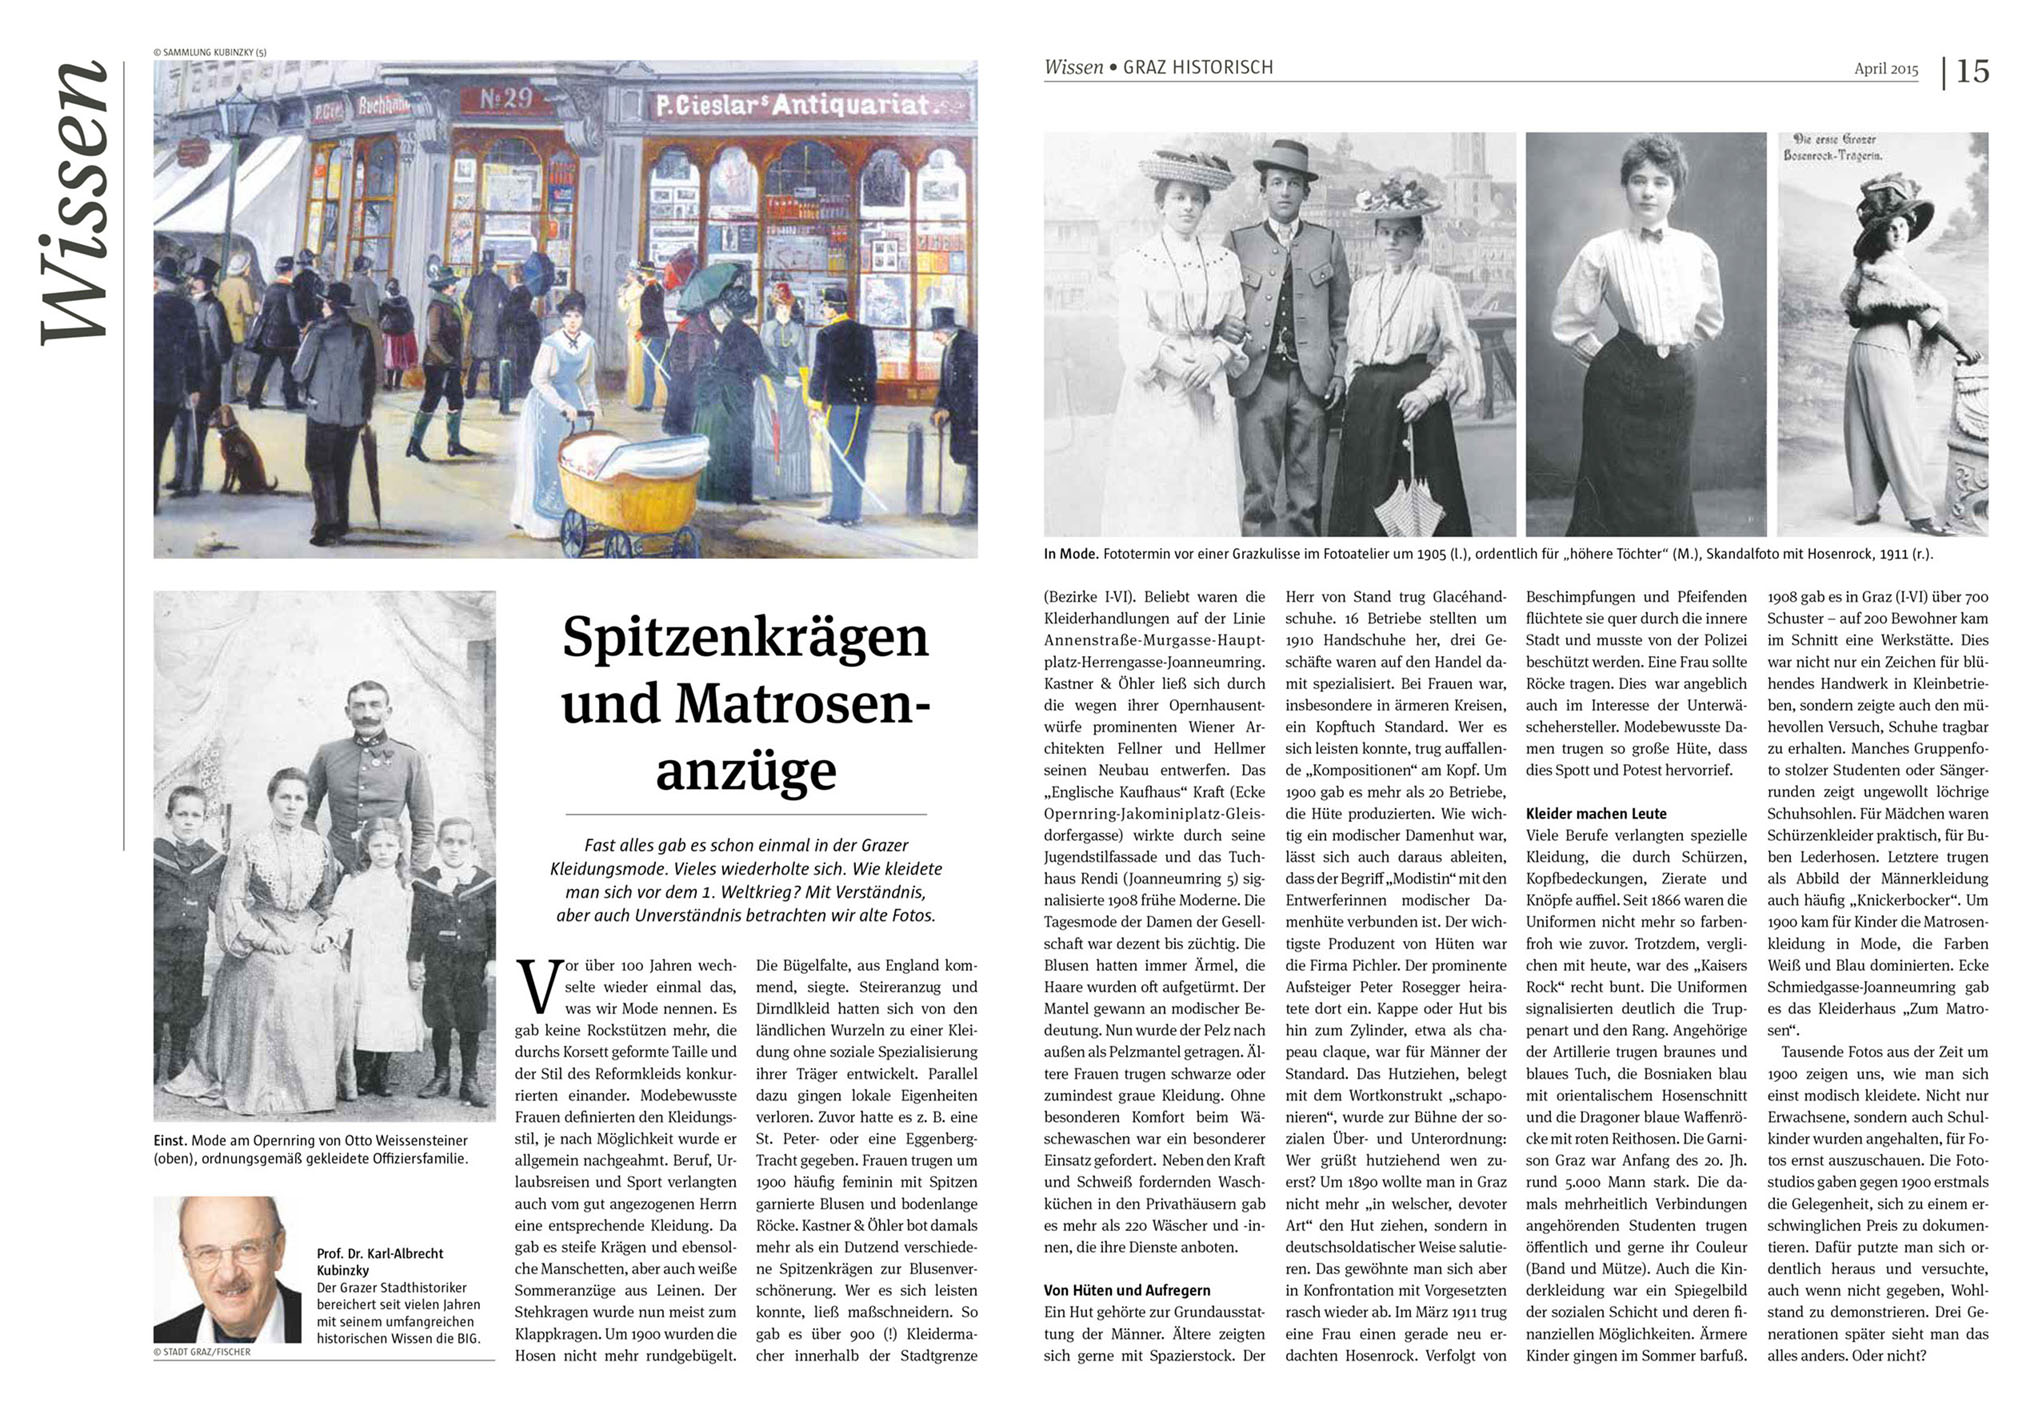 BIG historisch_april_2015_14_15